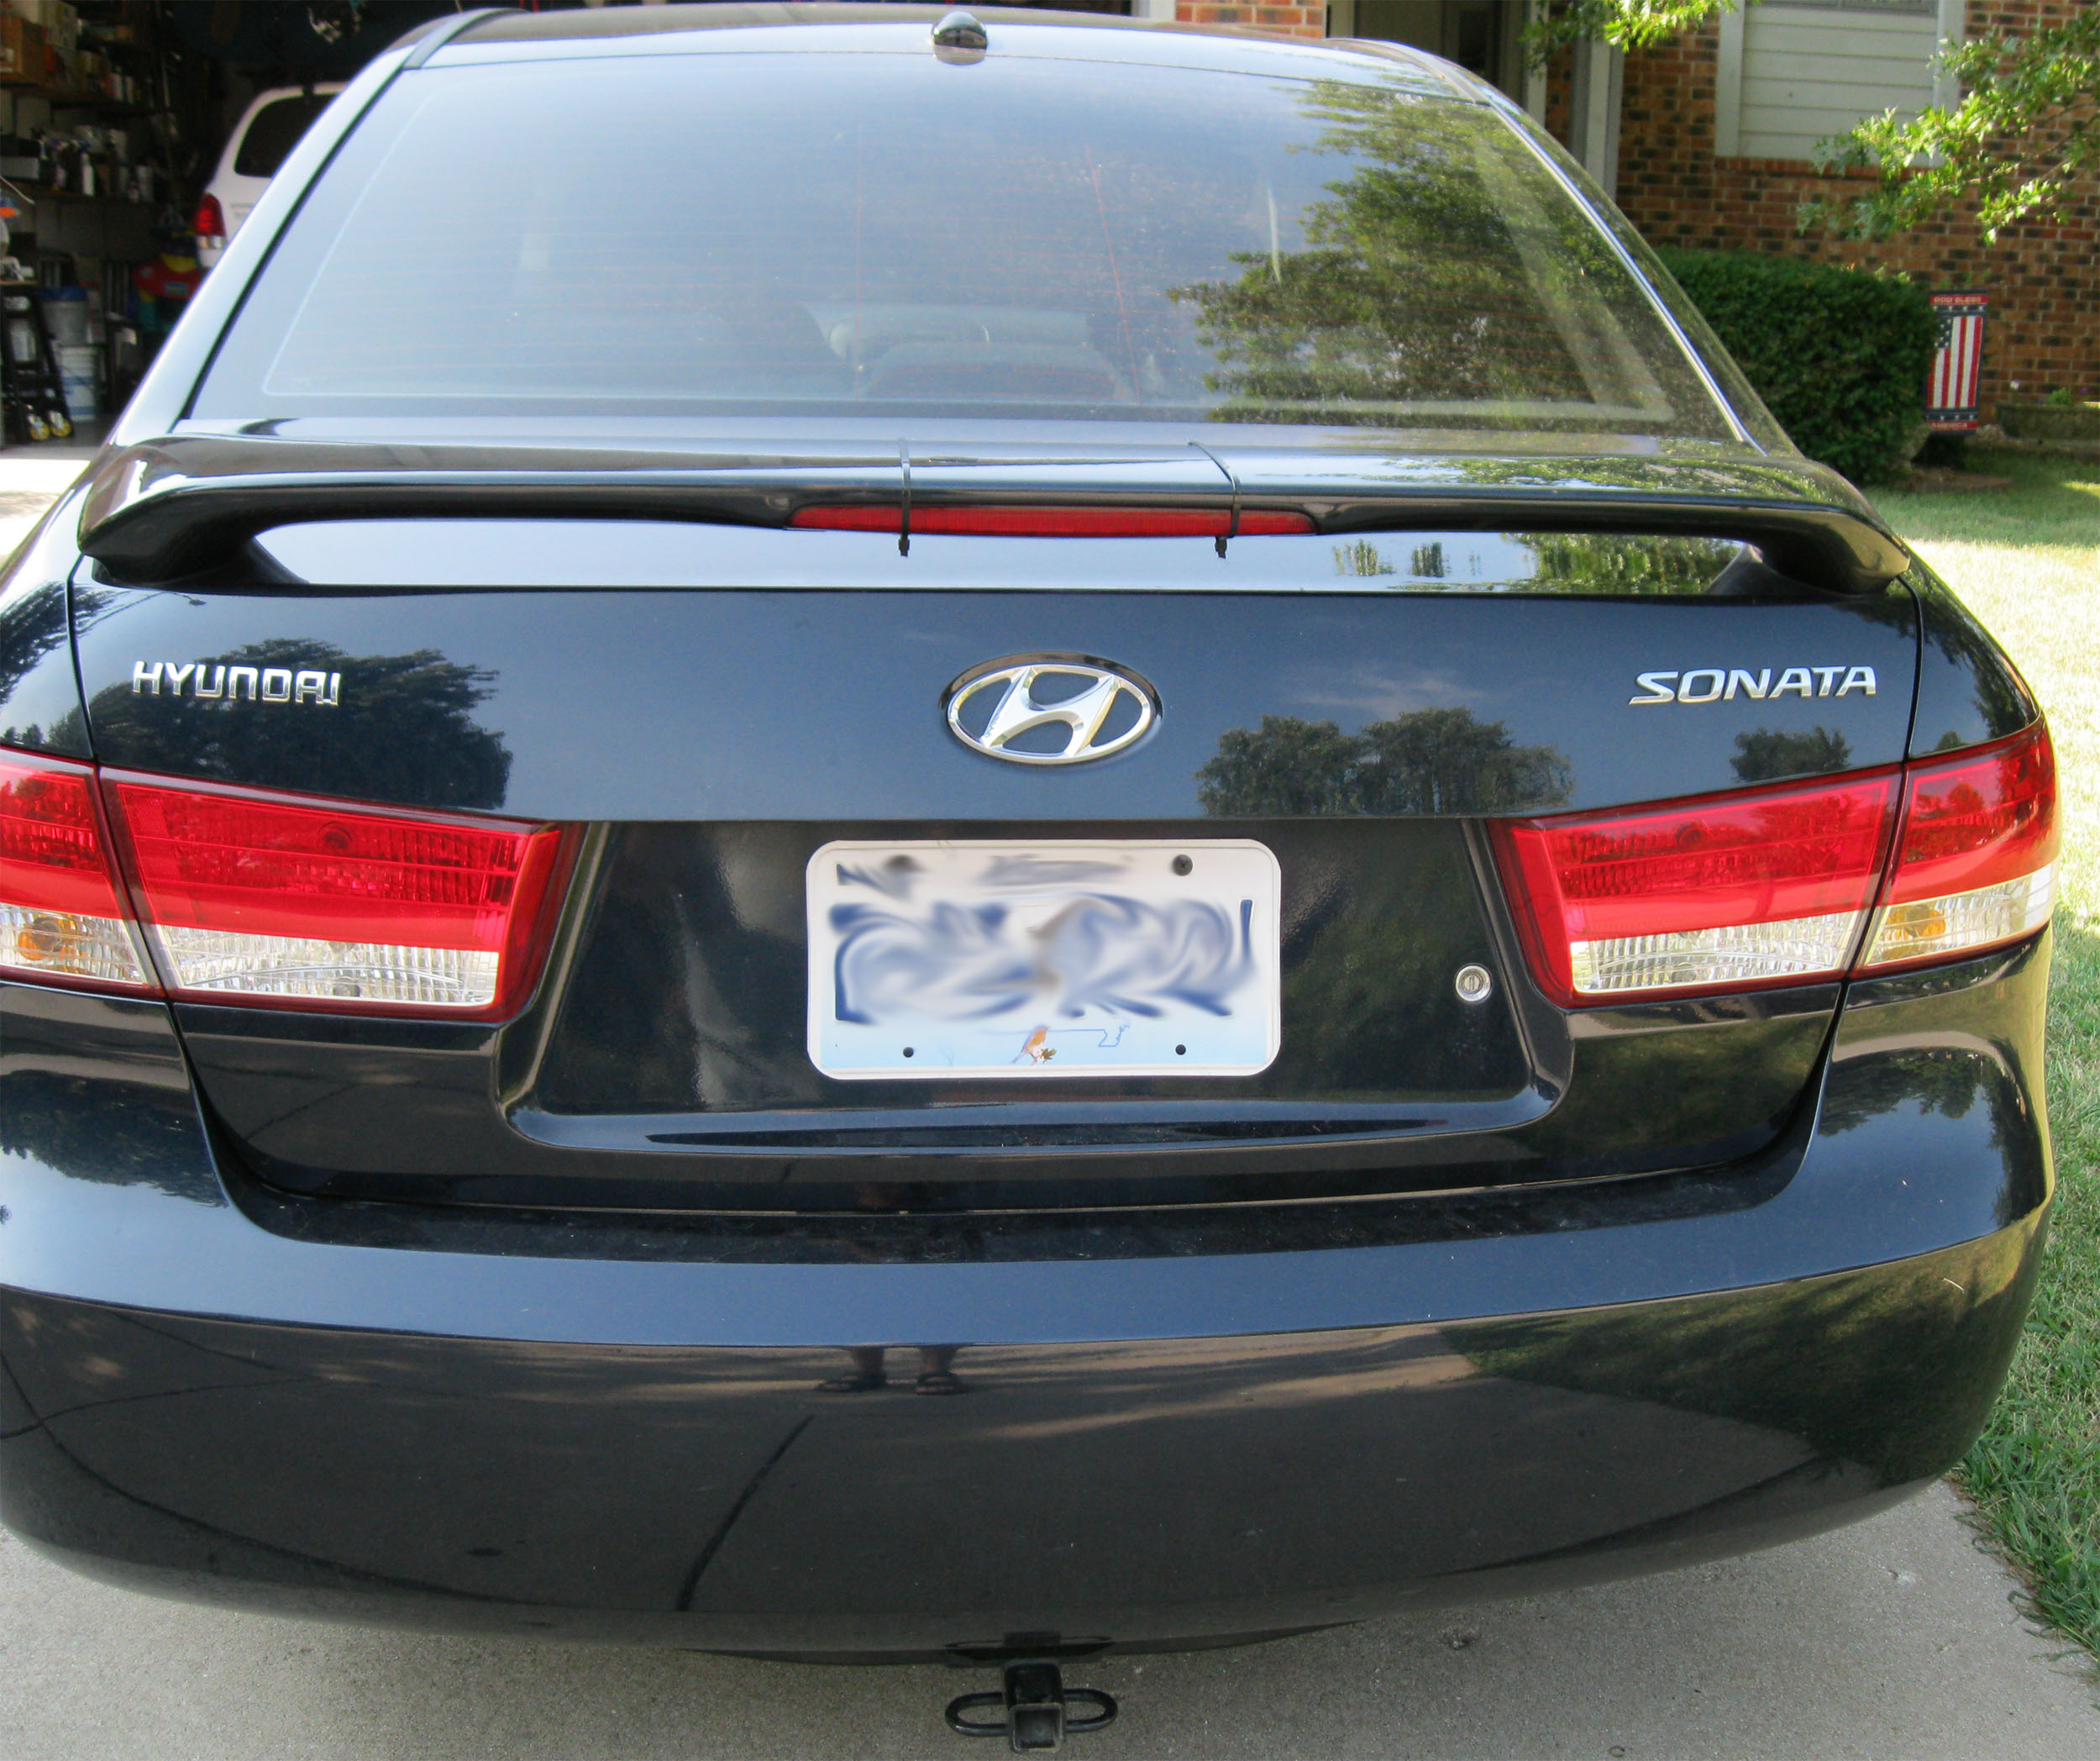 Photos: 2004-2009 Hyundai Sonata Spoiler Light on 2007 hyundai sonata wiring diagram, 2002 hyundai sonata exhaust, 1990 hyundai sonata wiring diagram, 1994 hyundai excel wiring diagram, 05 sonata headlamp wiring diagram, 2013 hyundai elantra wiring diagram, 2009 hyundai santa fe wiring diagram, hyundai sonata fuse box diagram, 2006 hyundai santa fe wiring diagram, 2007 hyundai santa fe wiring diagram, 2002 hyundai sonata serpentine belt diagram, 2011 hyundai tucson wiring diagram, 1999 hyundai sonata wiring diagram, 2005 hyundai santa fe wiring diagram, 2003 hyundai santa fe wiring diagram, 2002 hyundai santa fe wiring diagram, 2003 hyundai xg350 wiring diagram, 2007 hyundai entourage wiring diagram, 2011 hyundai genesis coupe wiring diagram, 2002 hyundai sonata gls,